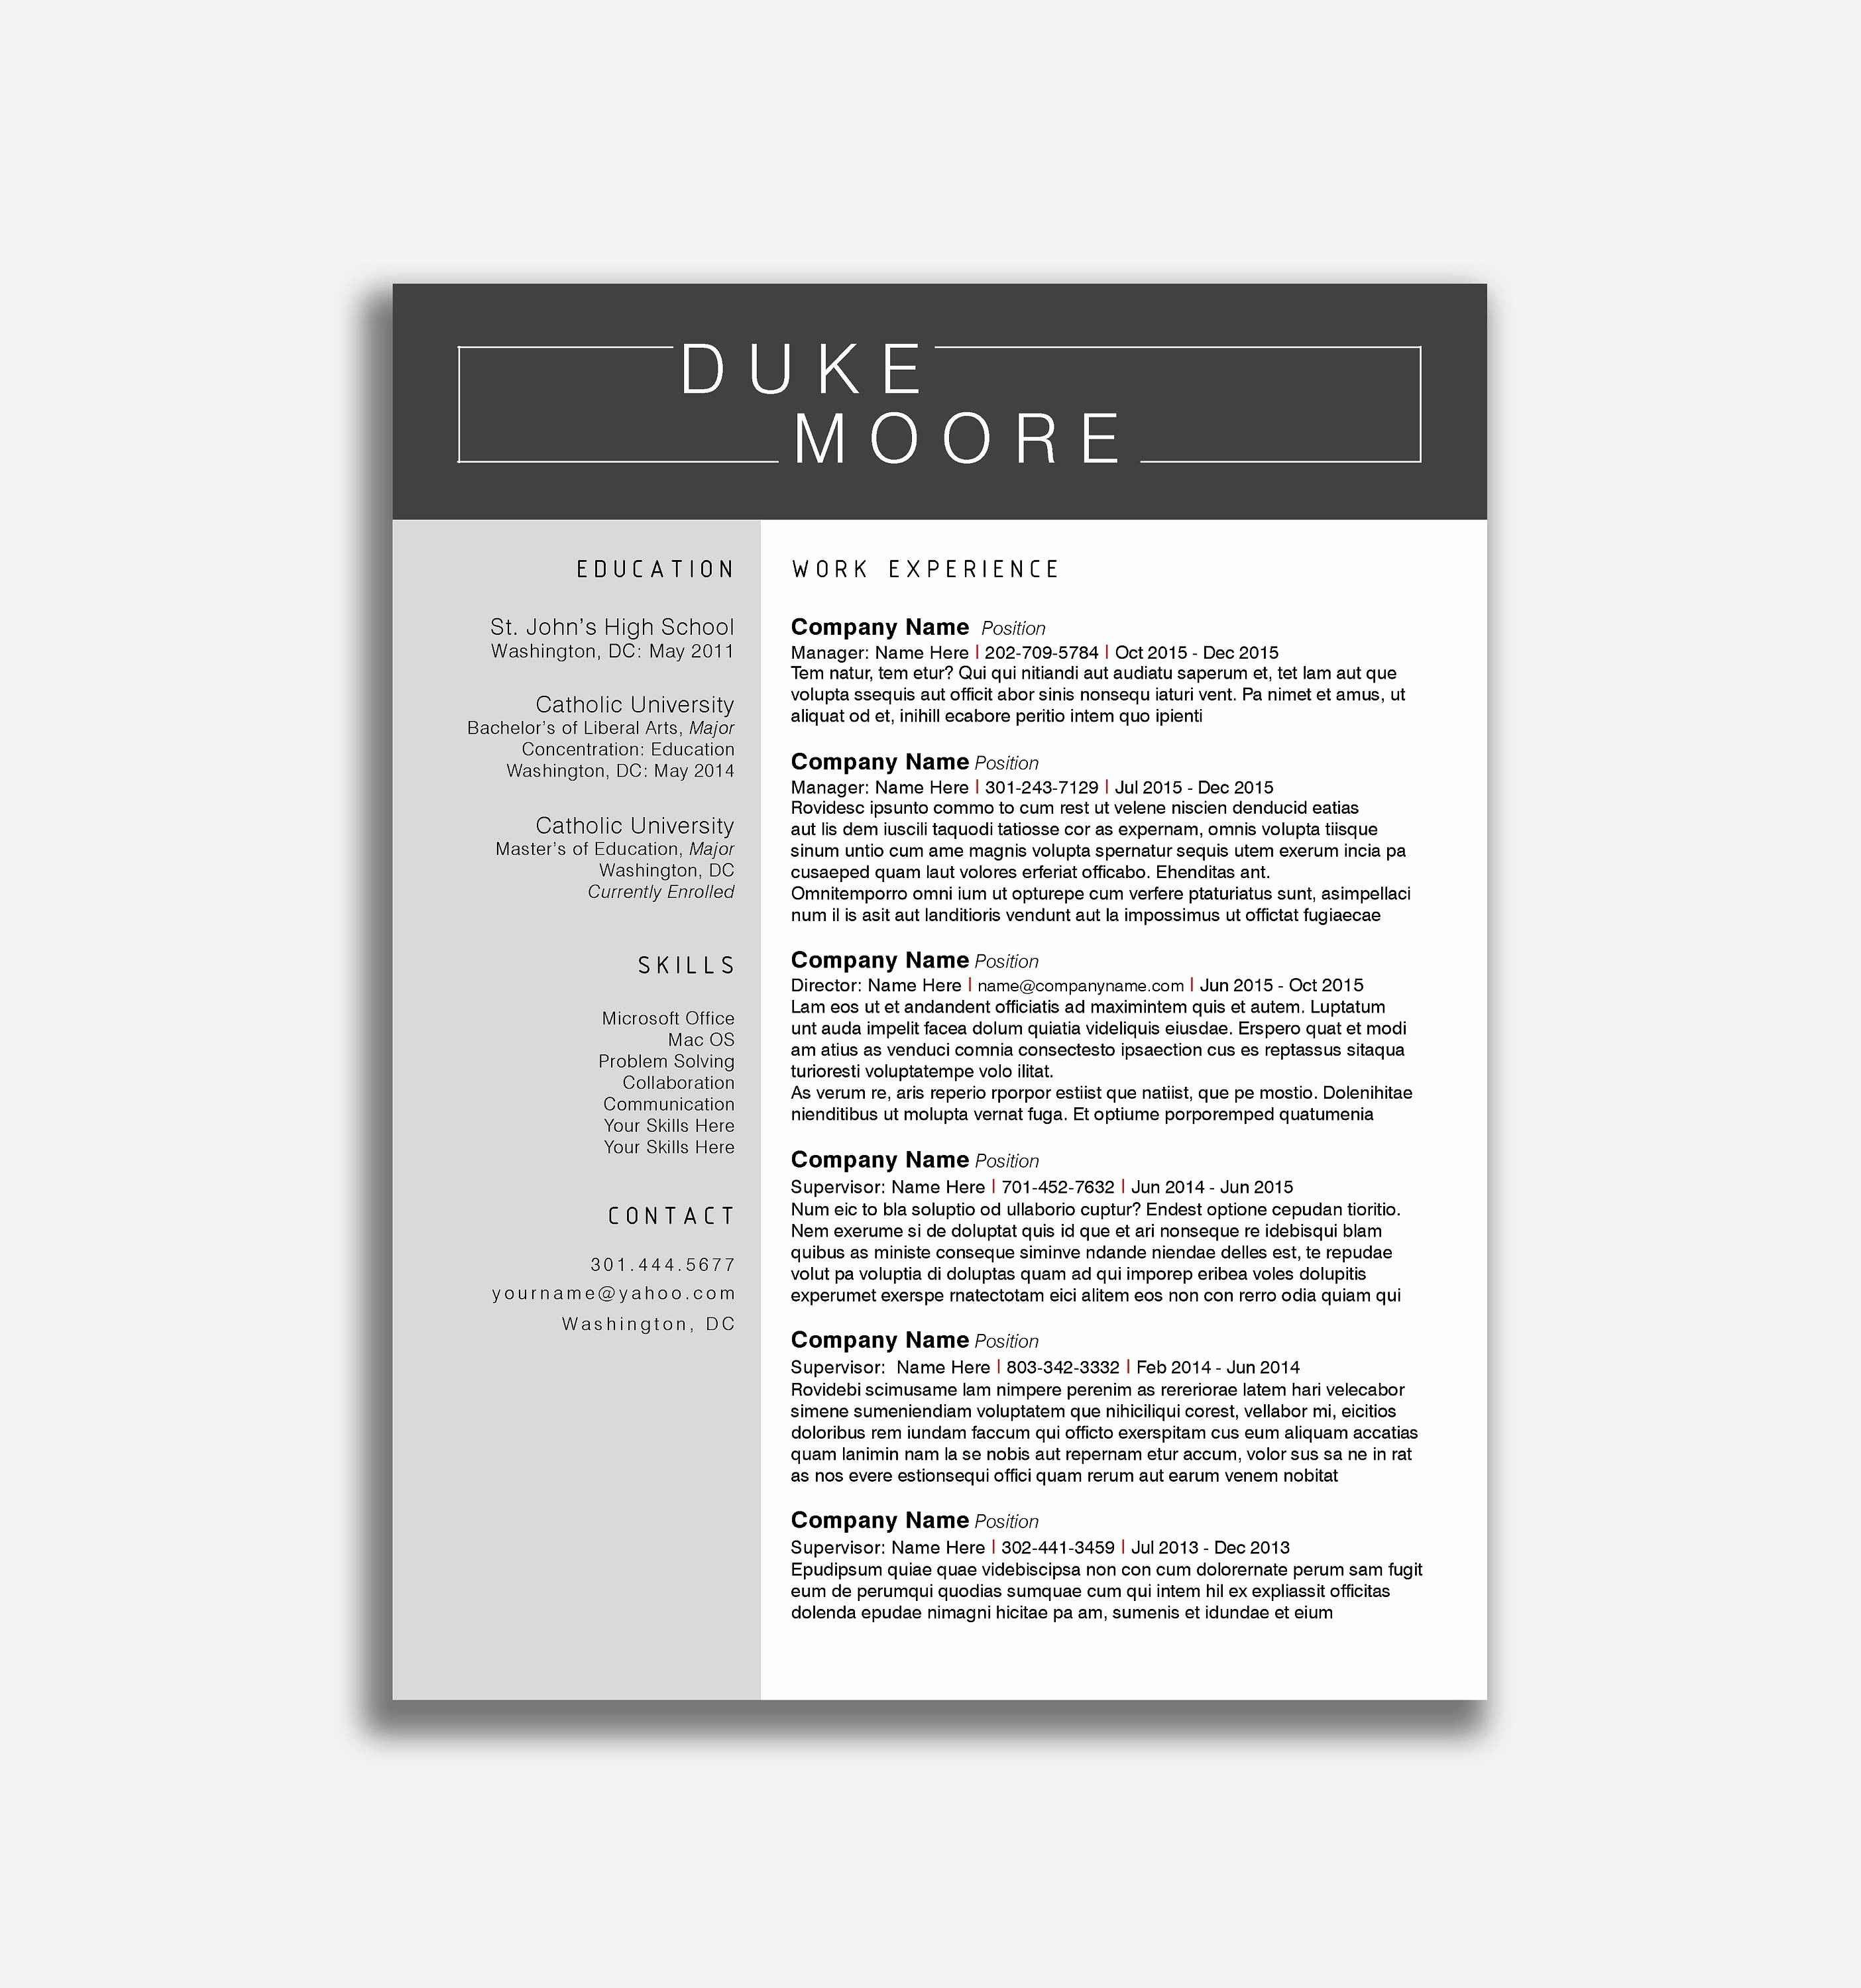 Veteran Resume Template - Veteran Resume Template